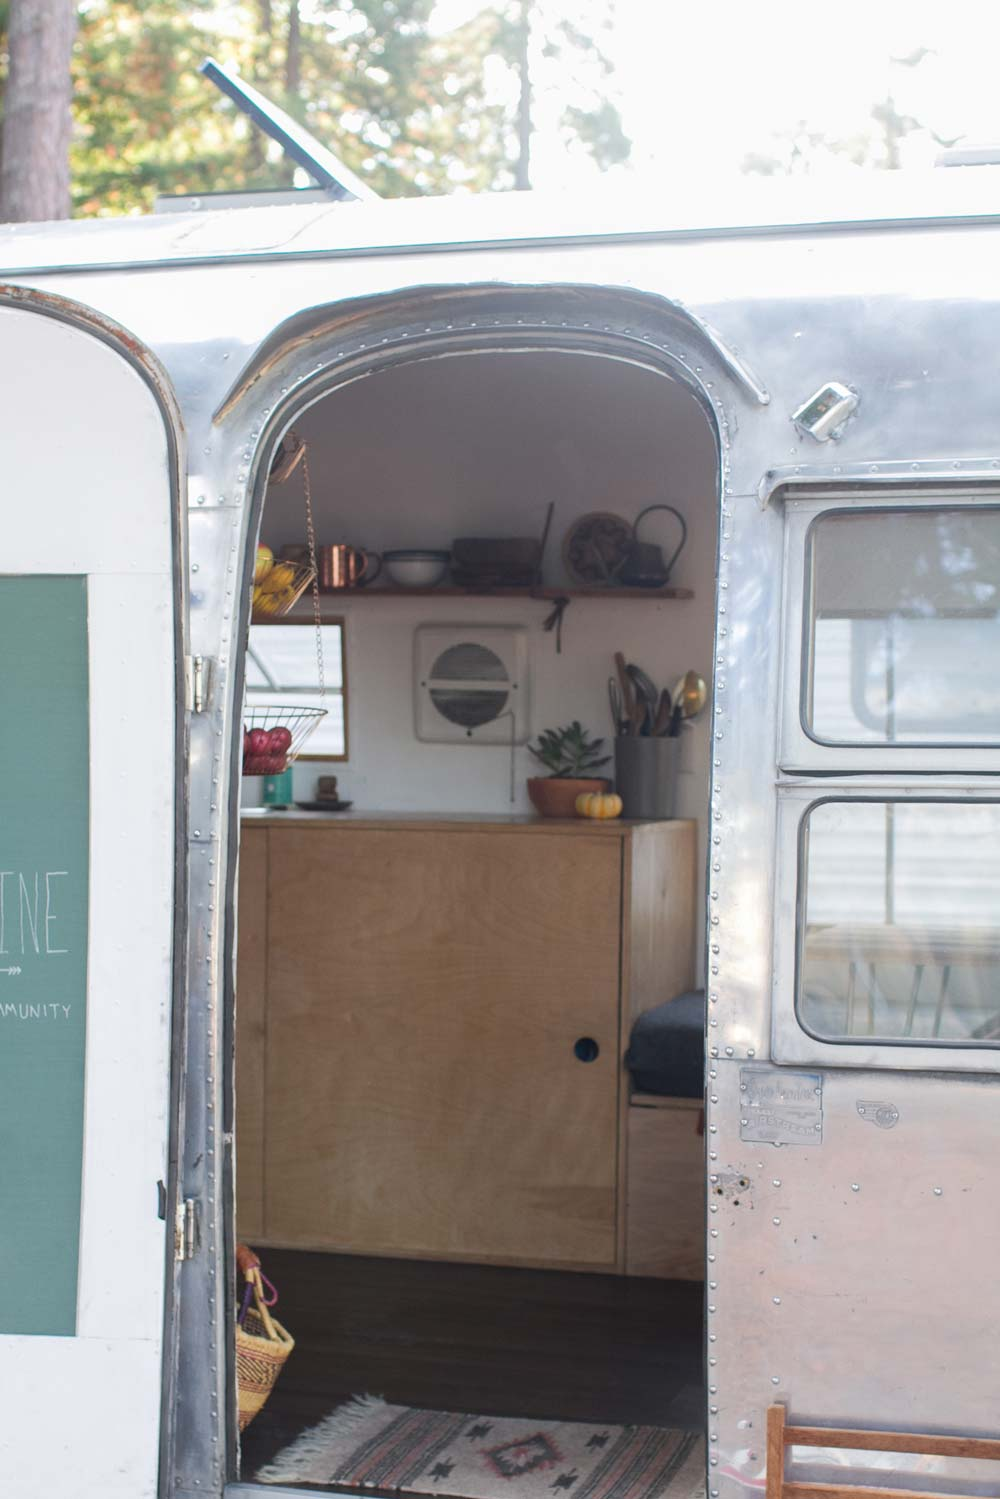 A Vintage Airstream Adventure on the Road, on Design*Sponge